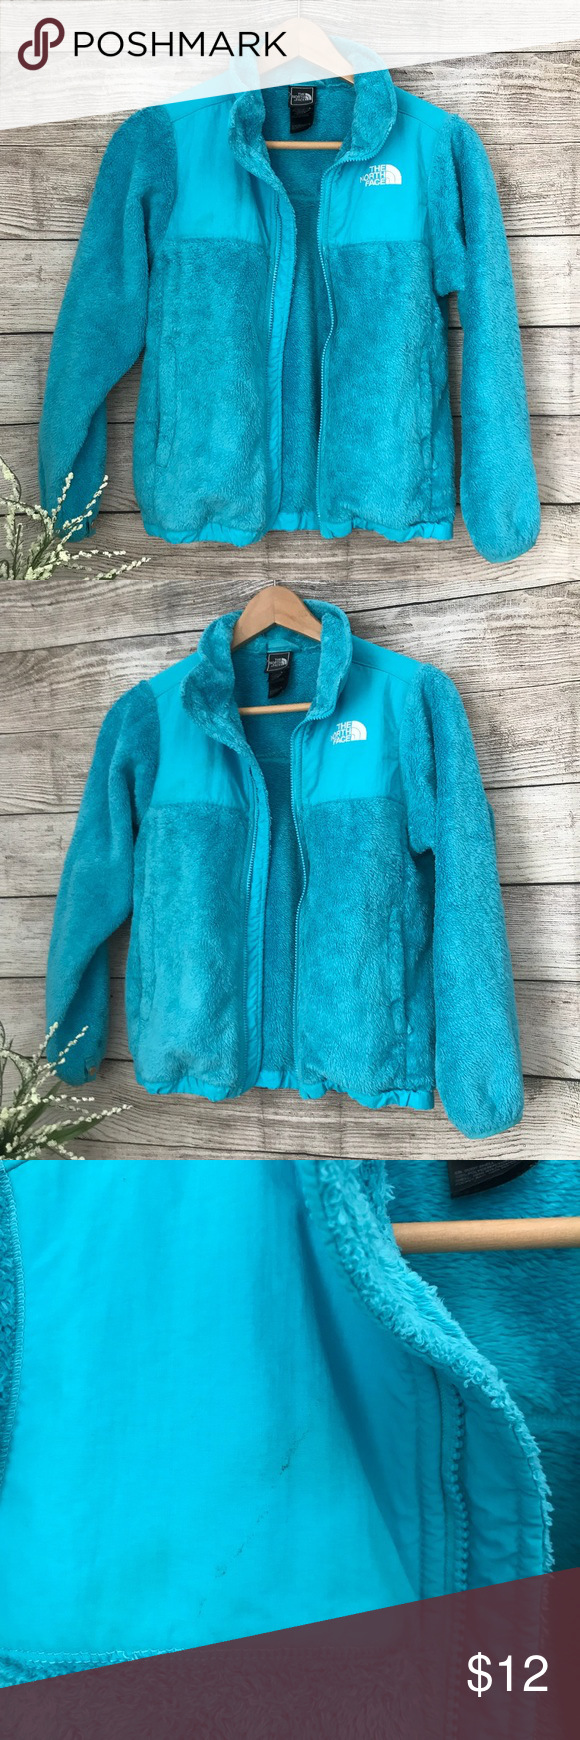 5 The North Face Girls Blue Fleece Jacket North Face Girls Fleece Jacket Jackets [ 1740 x 580 Pixel ]